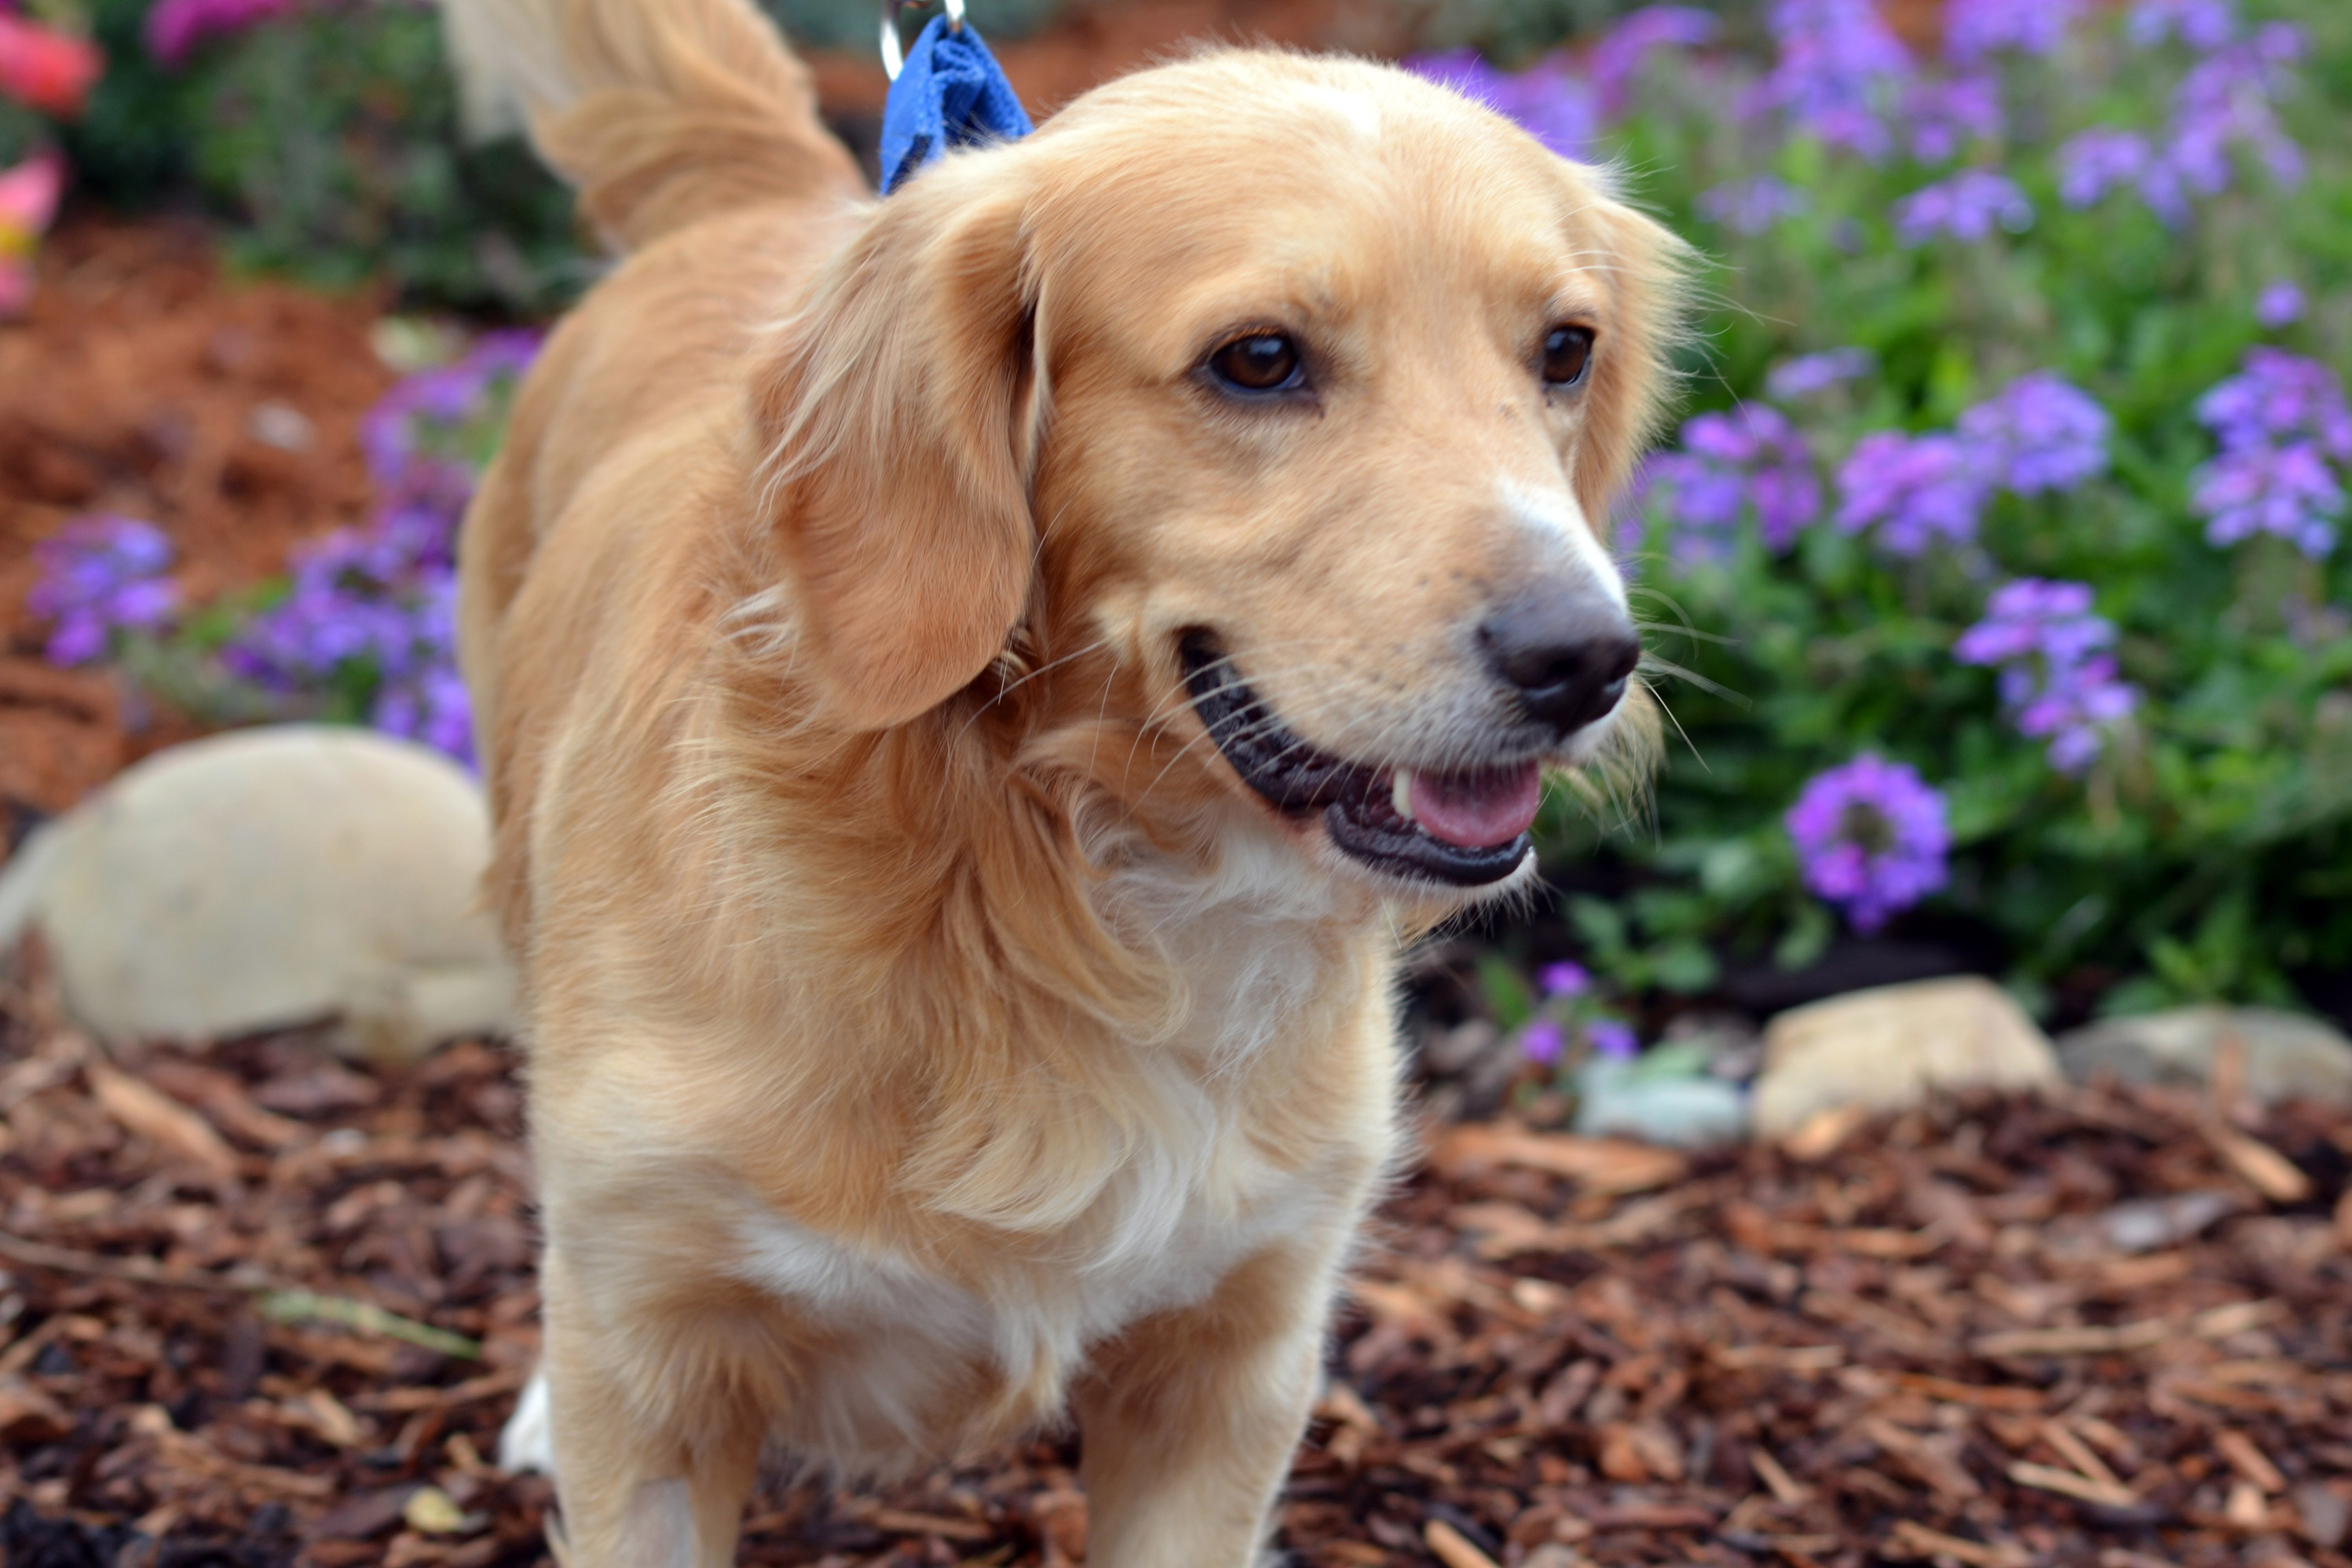 Can Dogs Recovering From Seizure Have Diarrhea